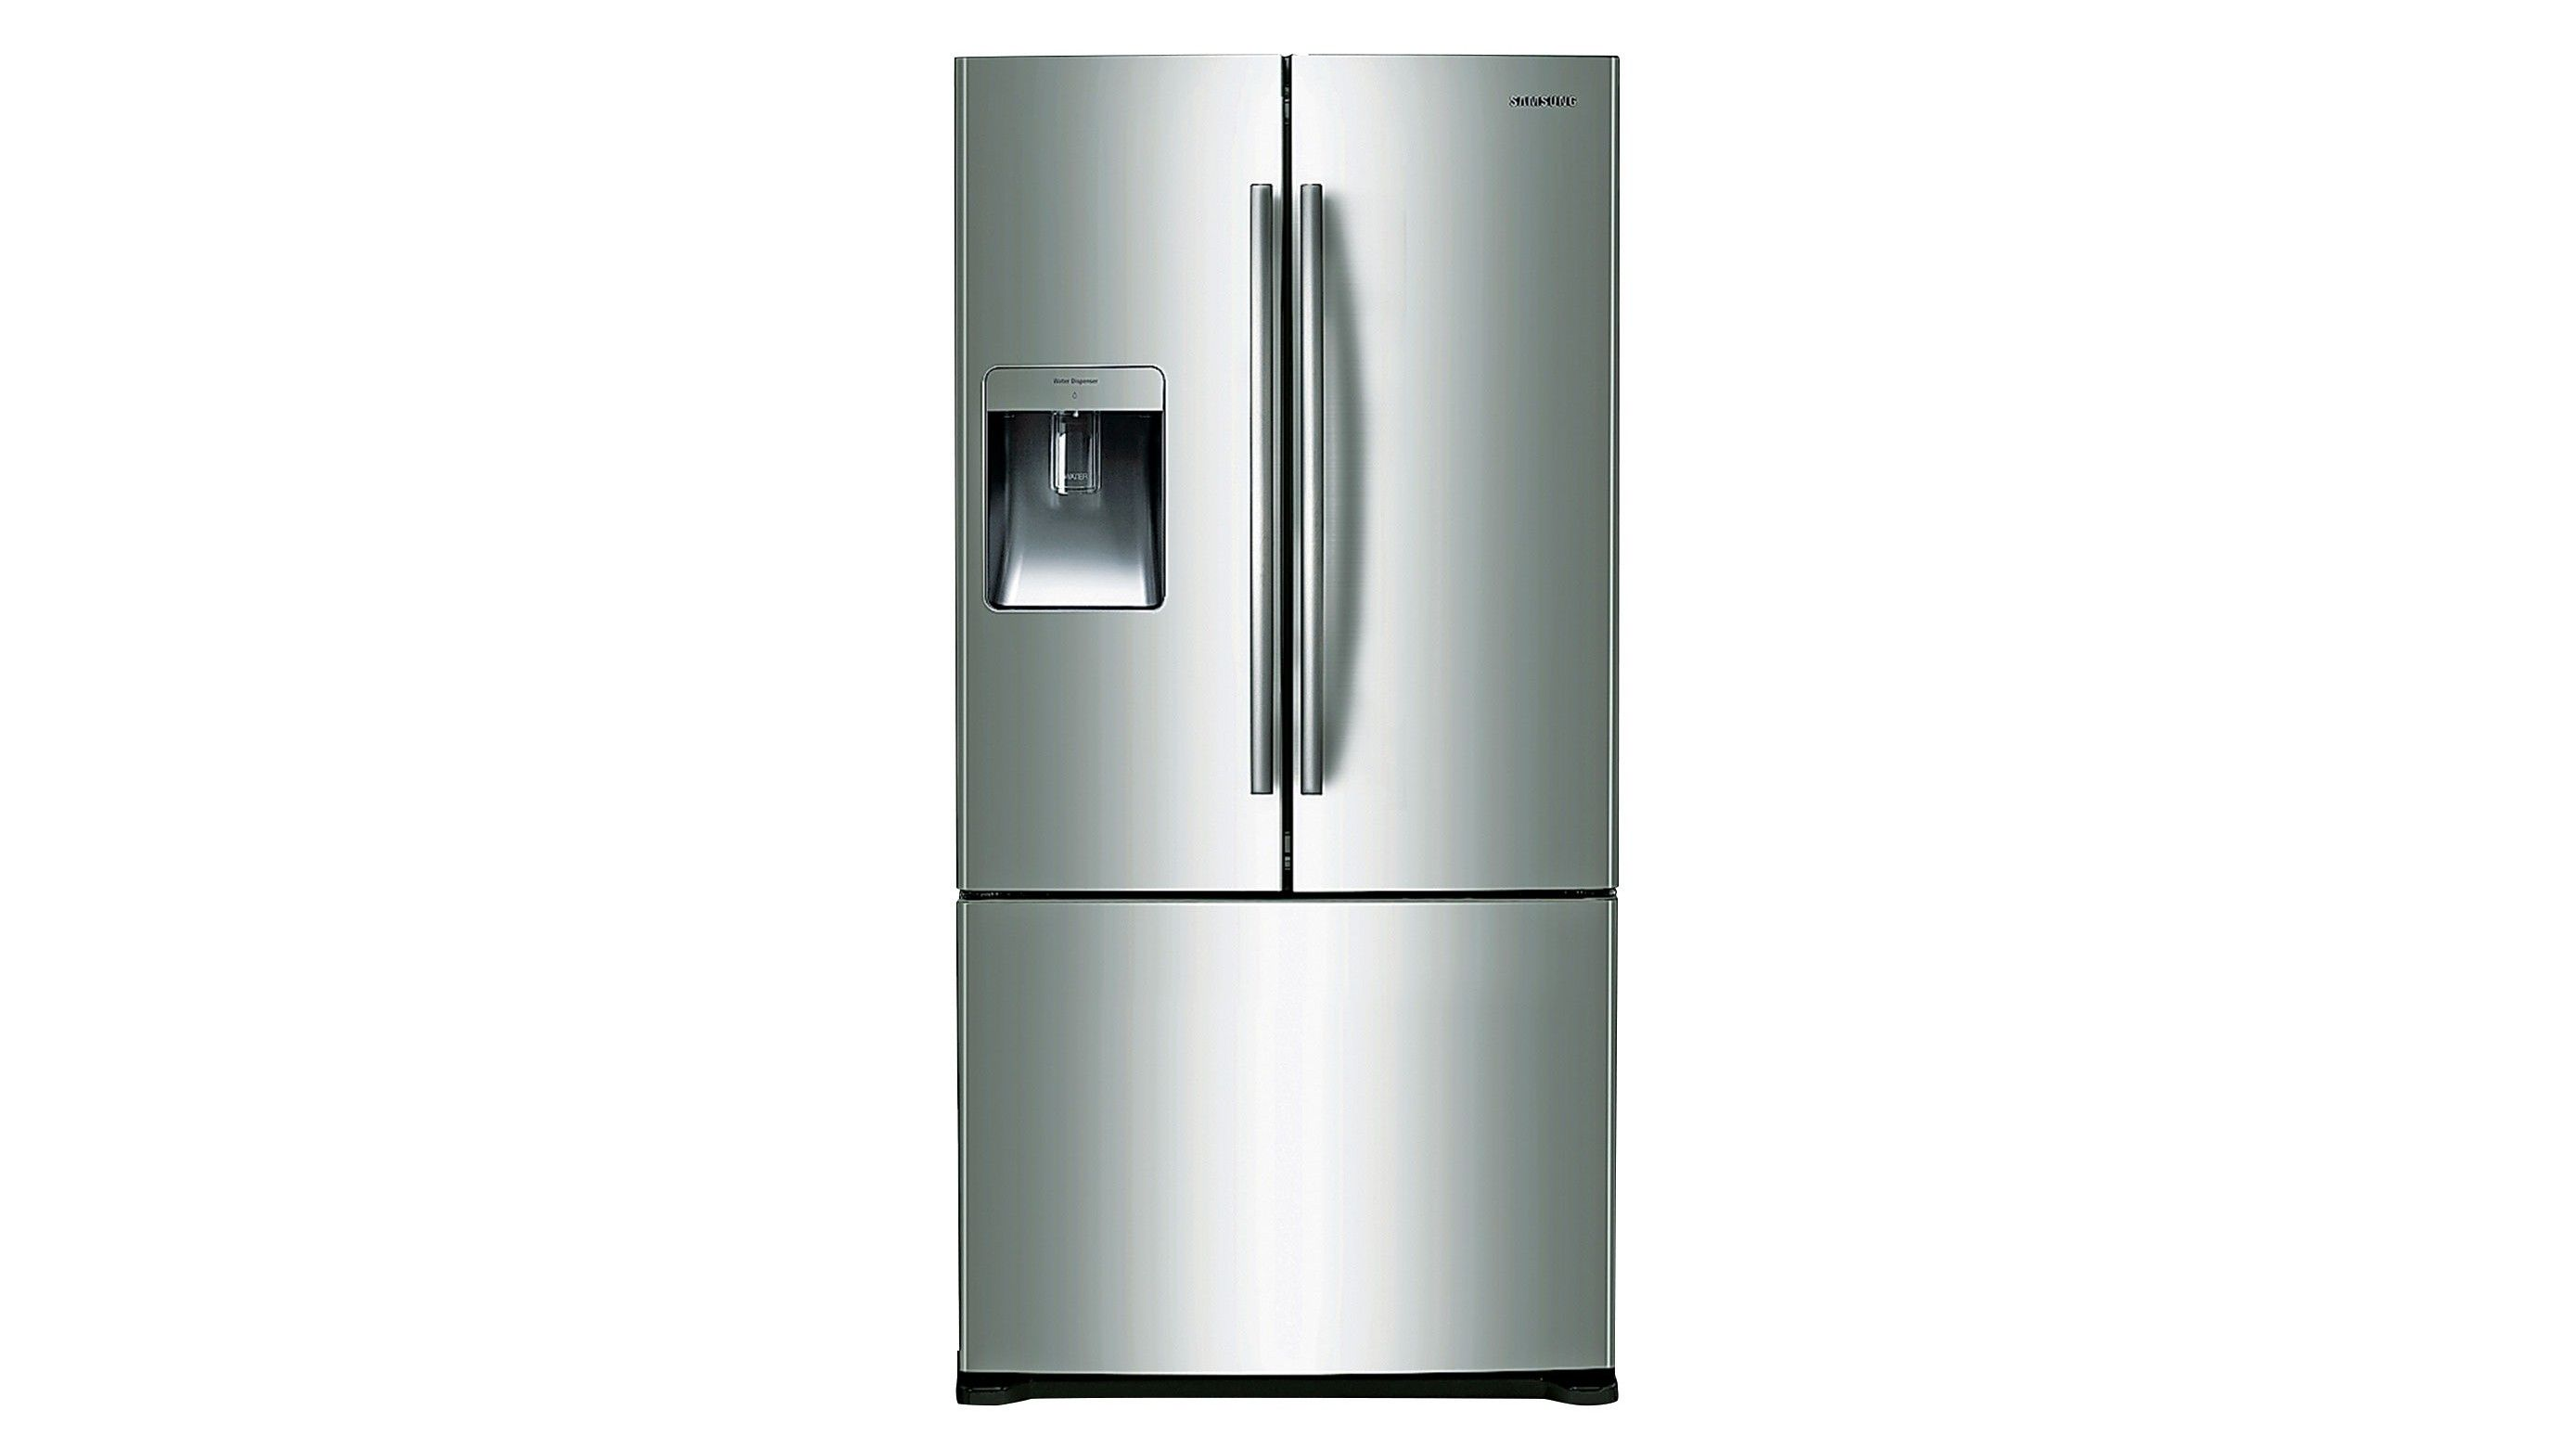 Samsung 533l French Door Refrigerator Stainless Steel 1900